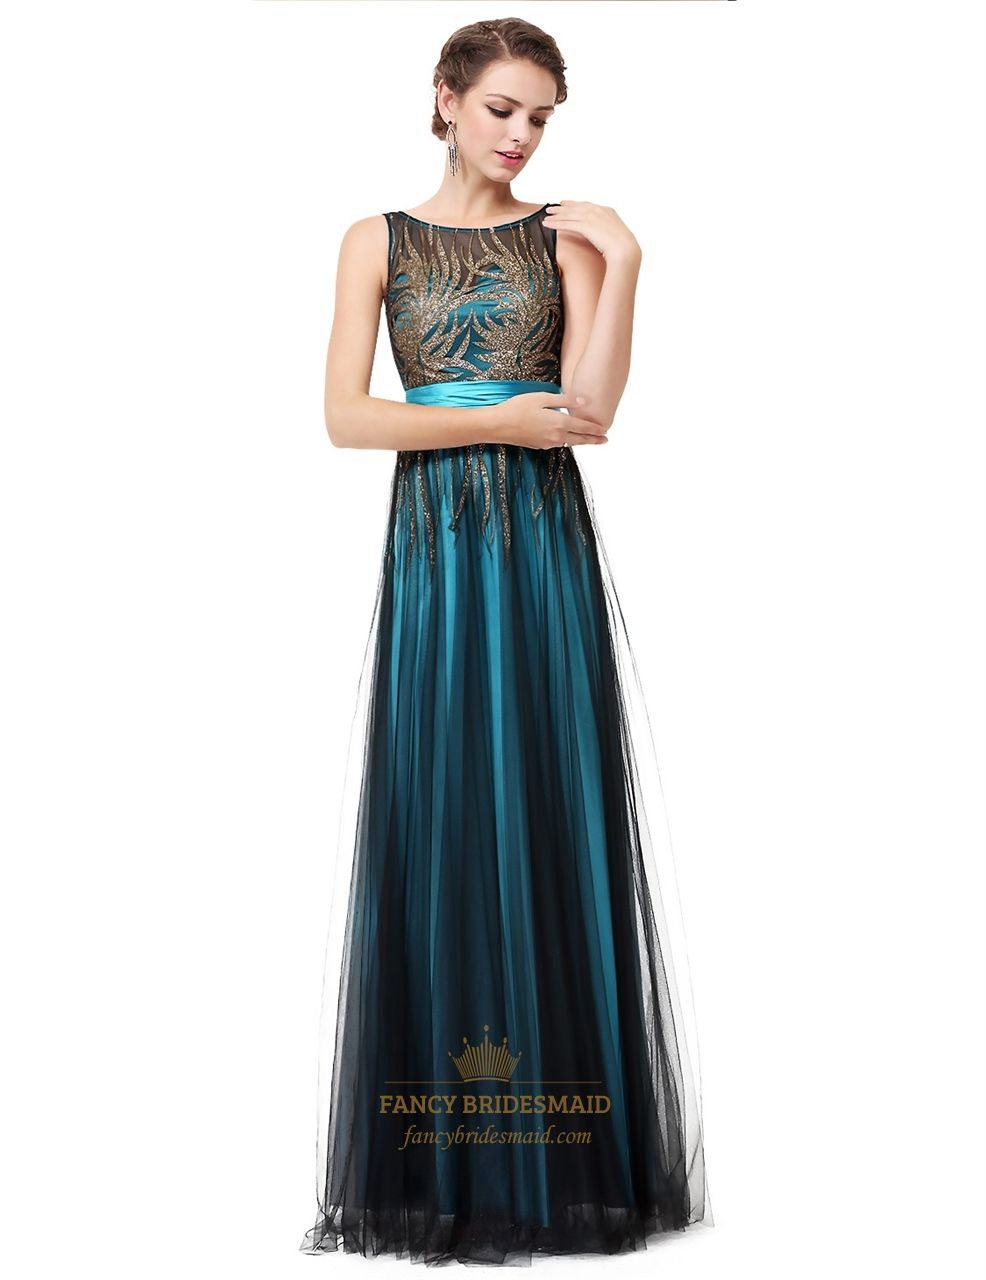 03184f99a0 Teal Round Neck Sequin Embellished Tulle Long Prom Dress With Sash ...